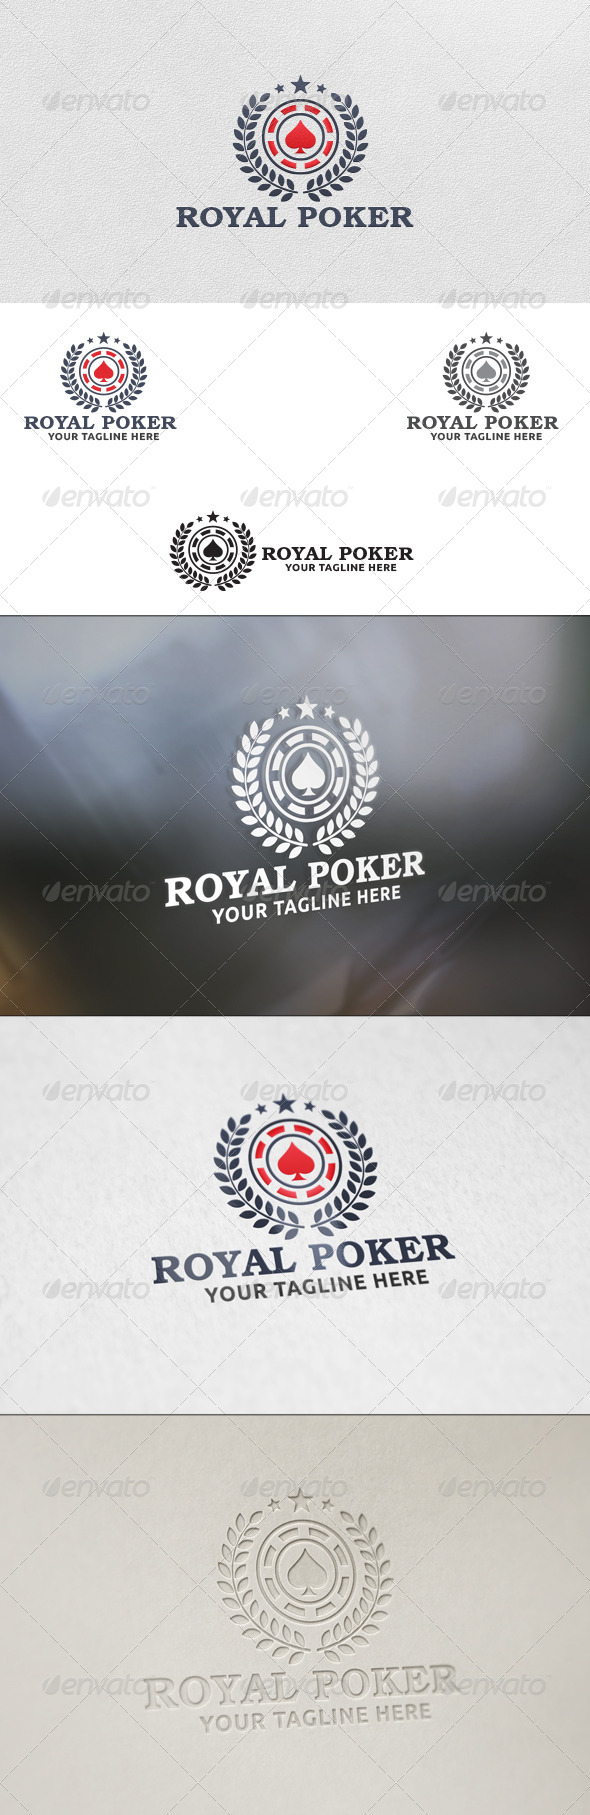 GraphicRiver Royal Poker Logo Template 5816852